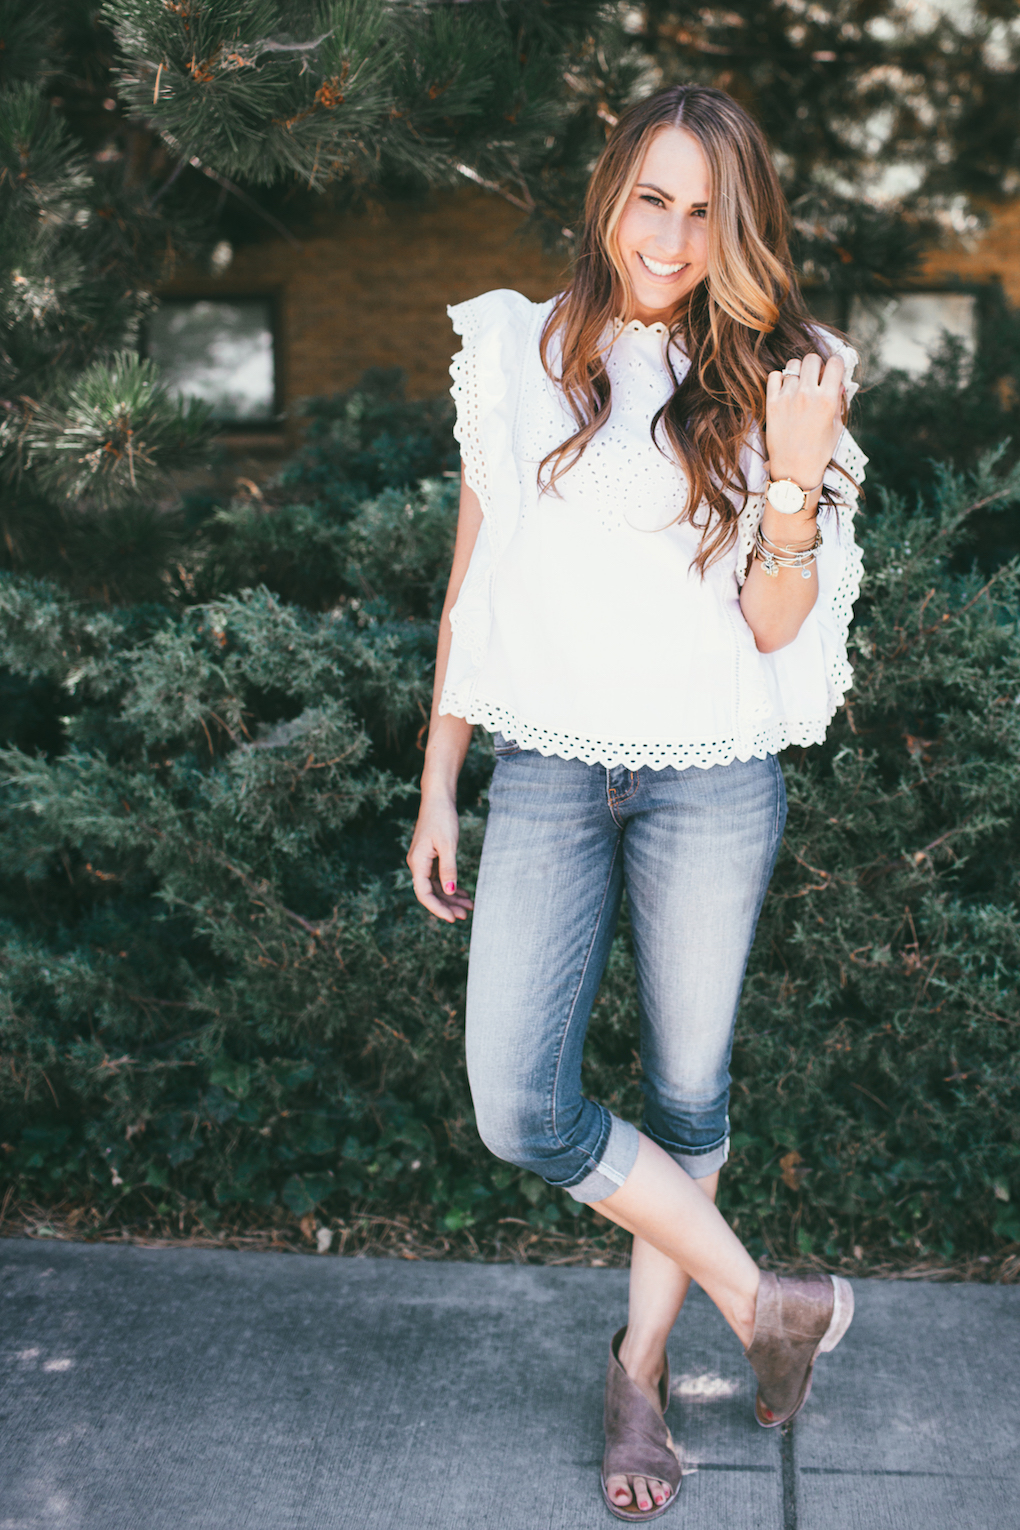 Girl in white eyelet top with crops on with watch and bracelets